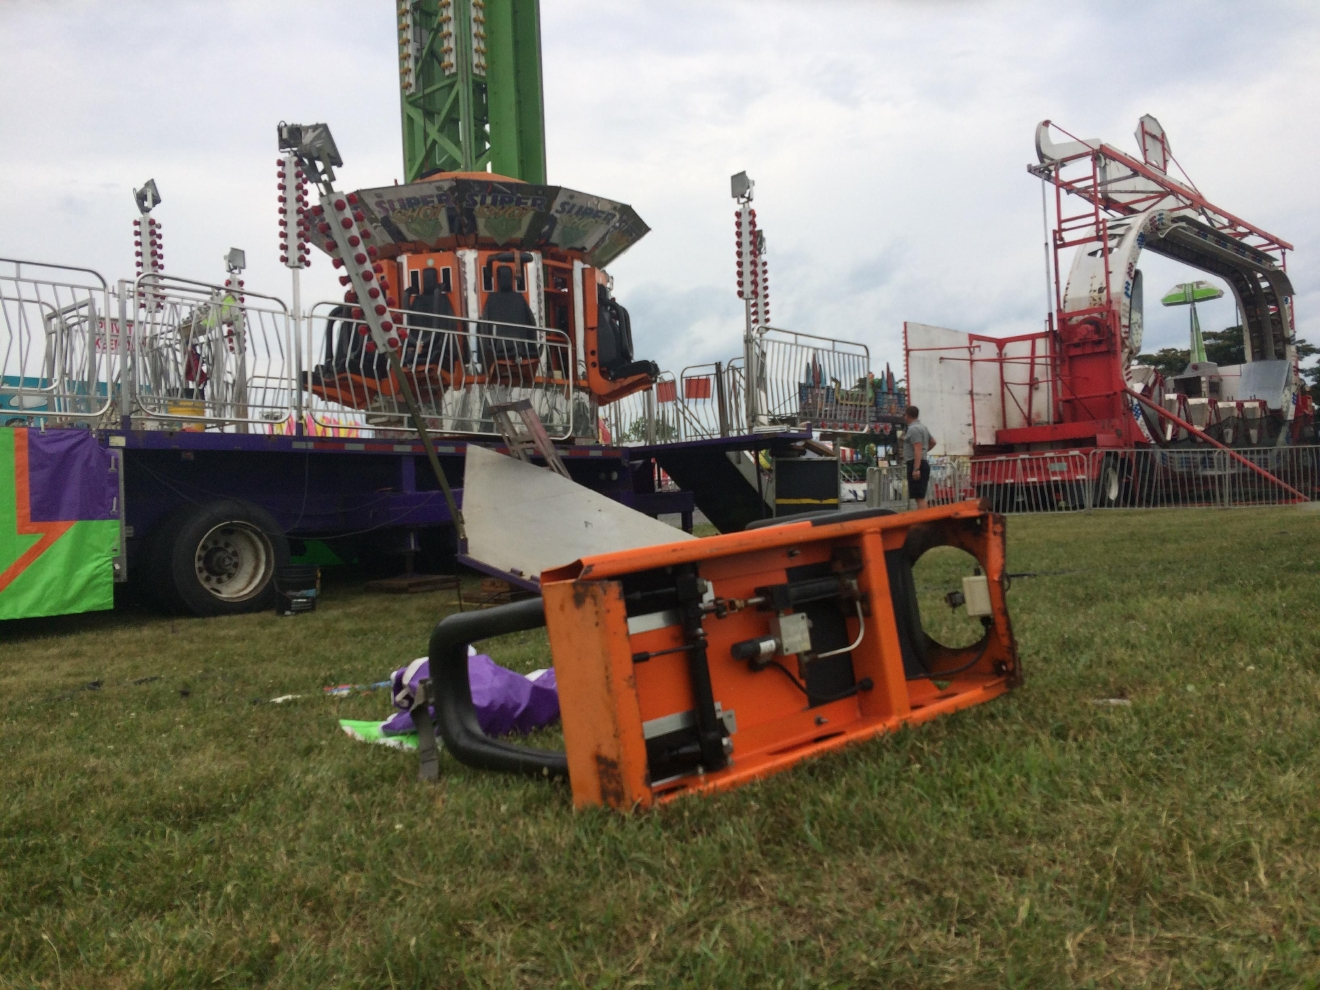 Woman seriously injured after 40 foot fall from ride at Virginia fairgrounds. (ABC7 photo)